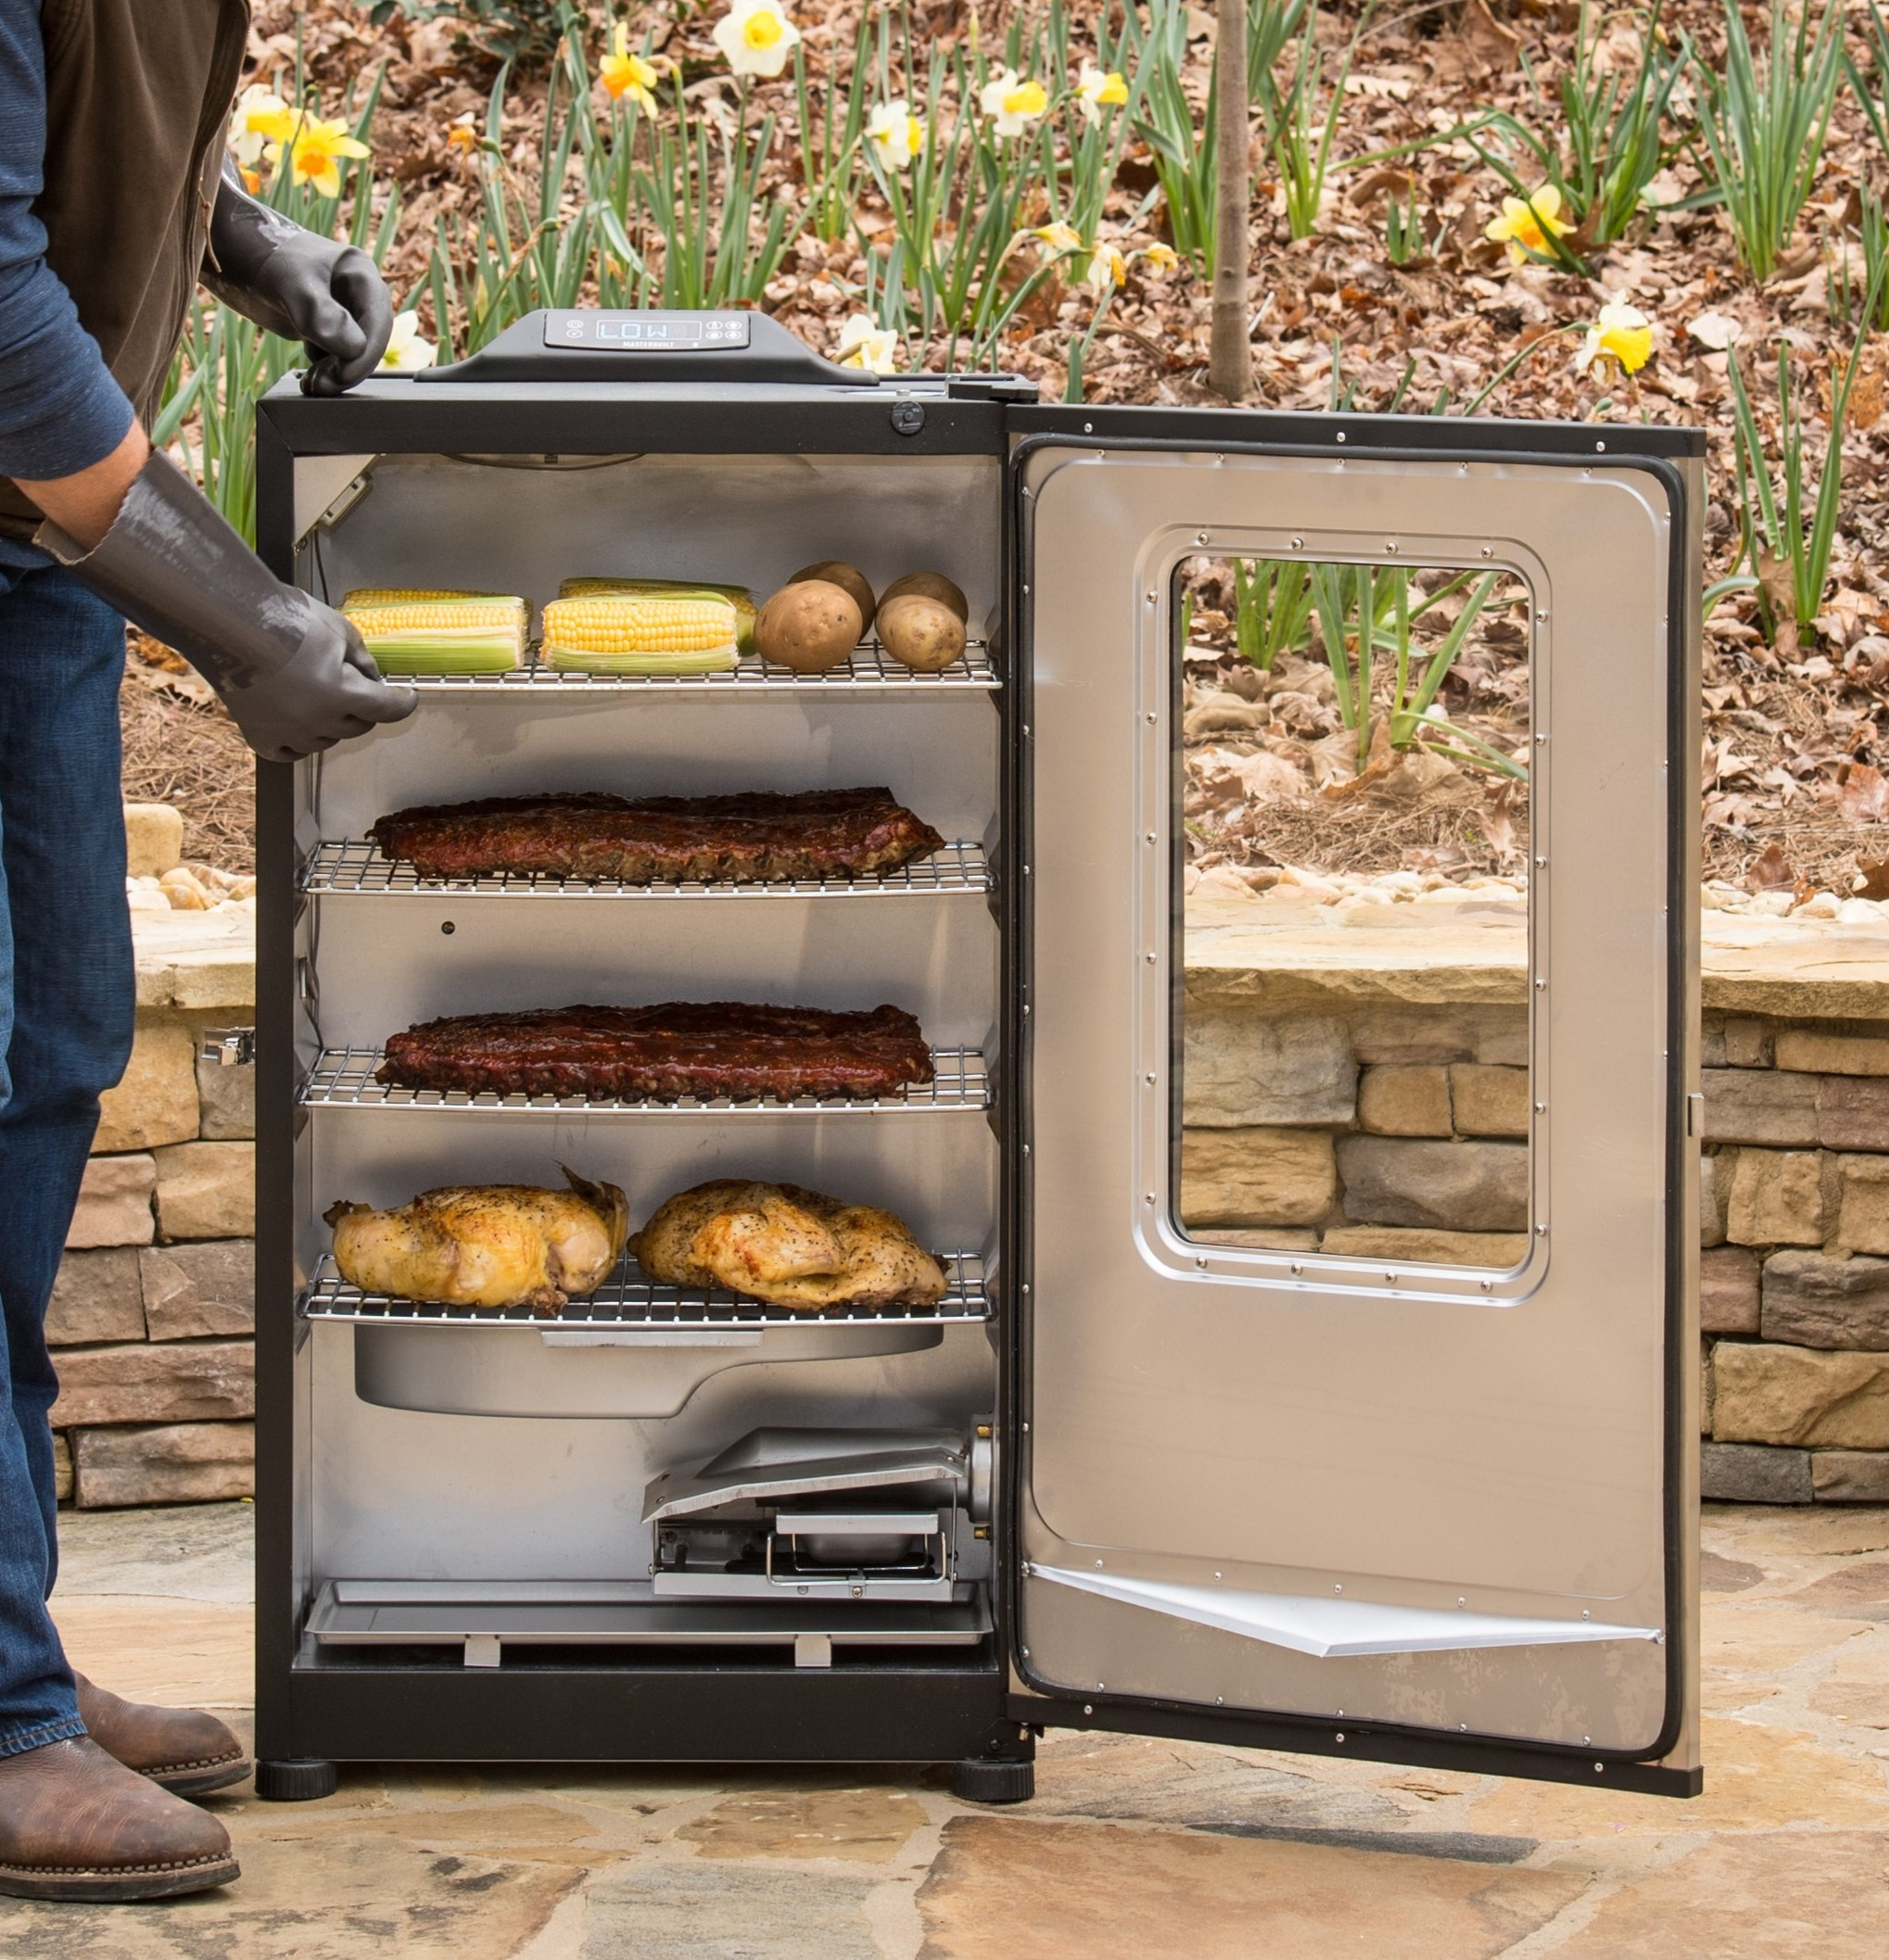 Four cooking racks provide enough room to cook for a crowd